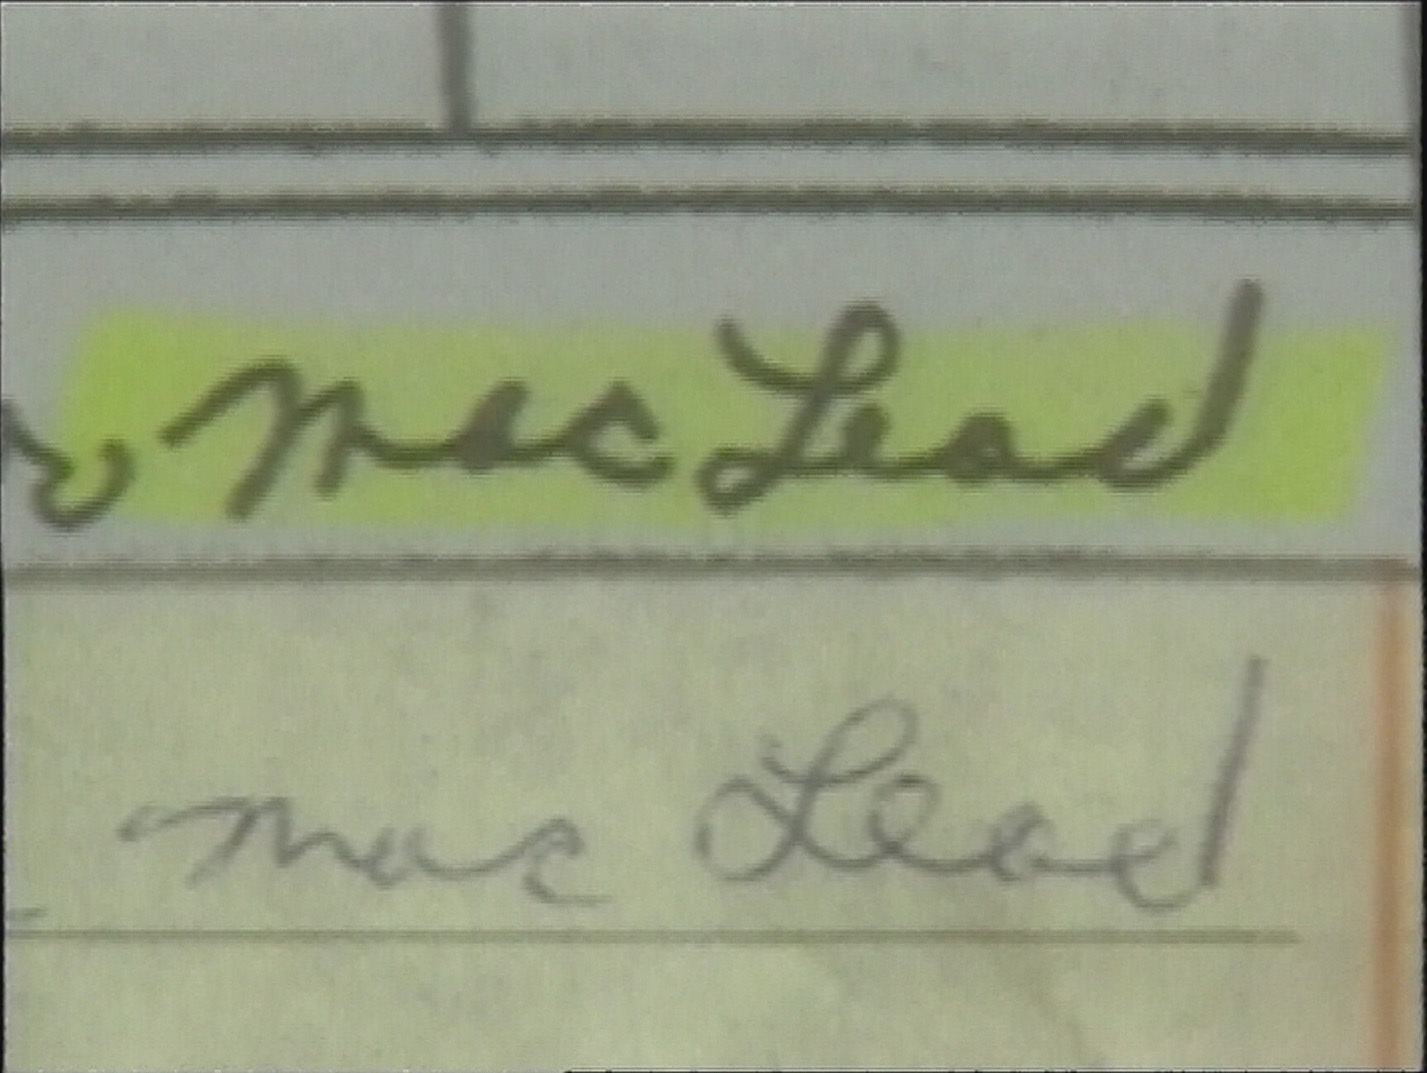 Police used handwriting samples of Bell's from school to compare against a receipt from a plumbing store in Moncton. (CBC)